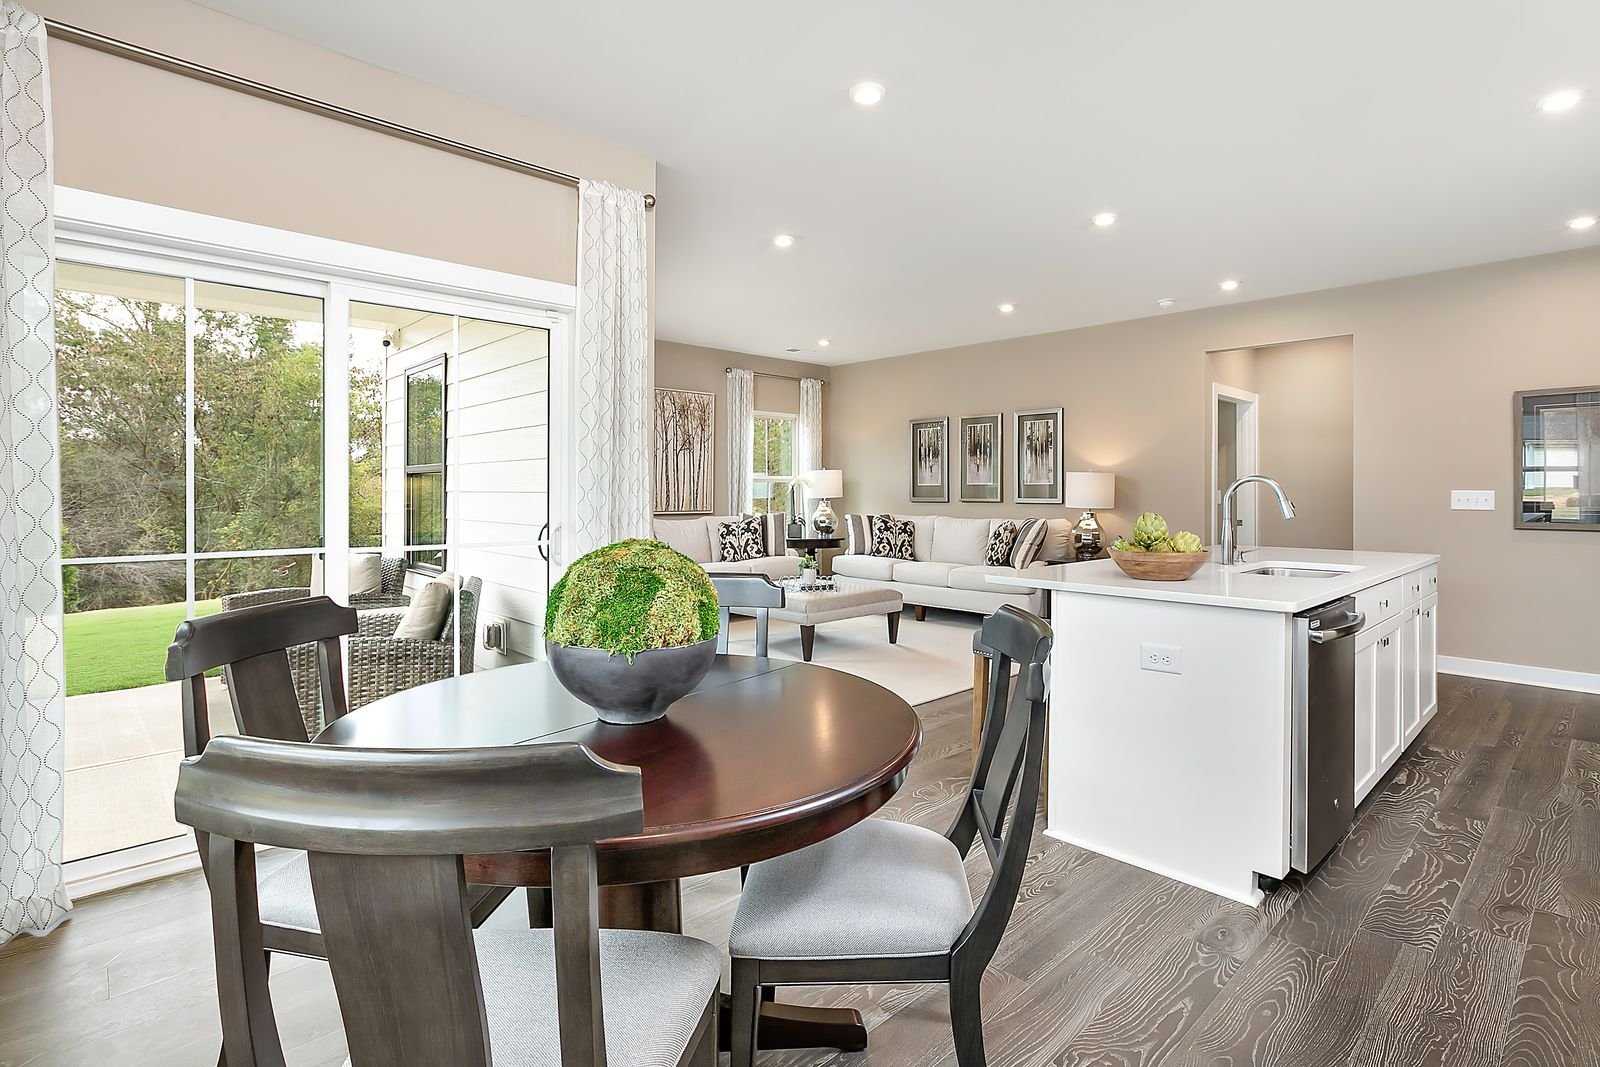 Kitchen featured in the Bramante 2-Story By Ryan Homes in Charlotte, NC